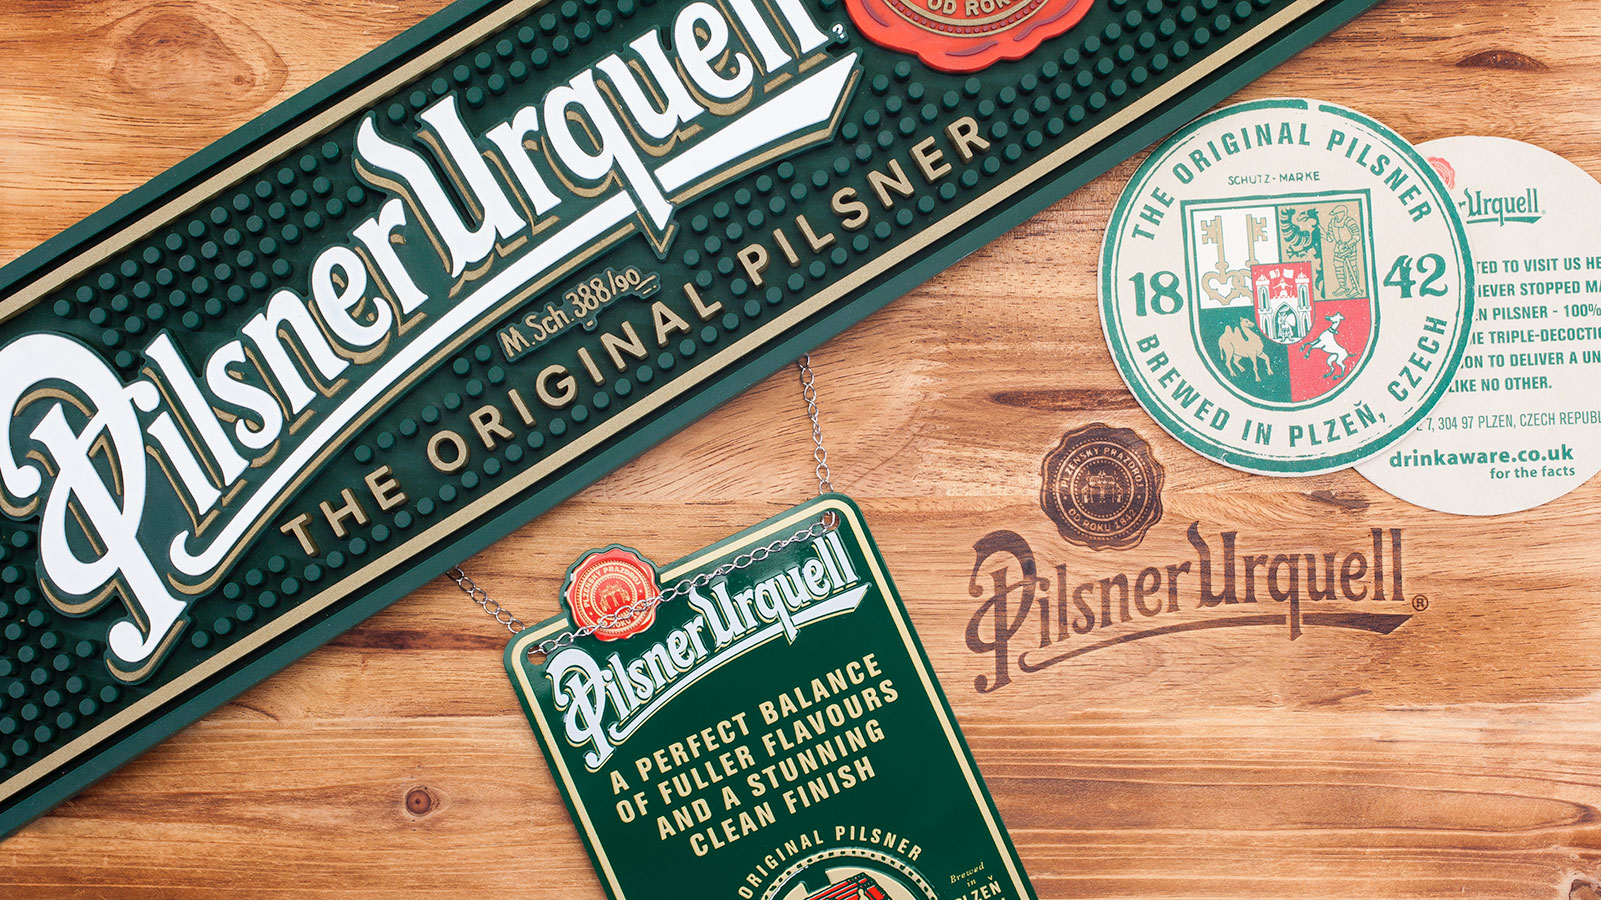 Pilsner-urquell-merchandise-product-photography